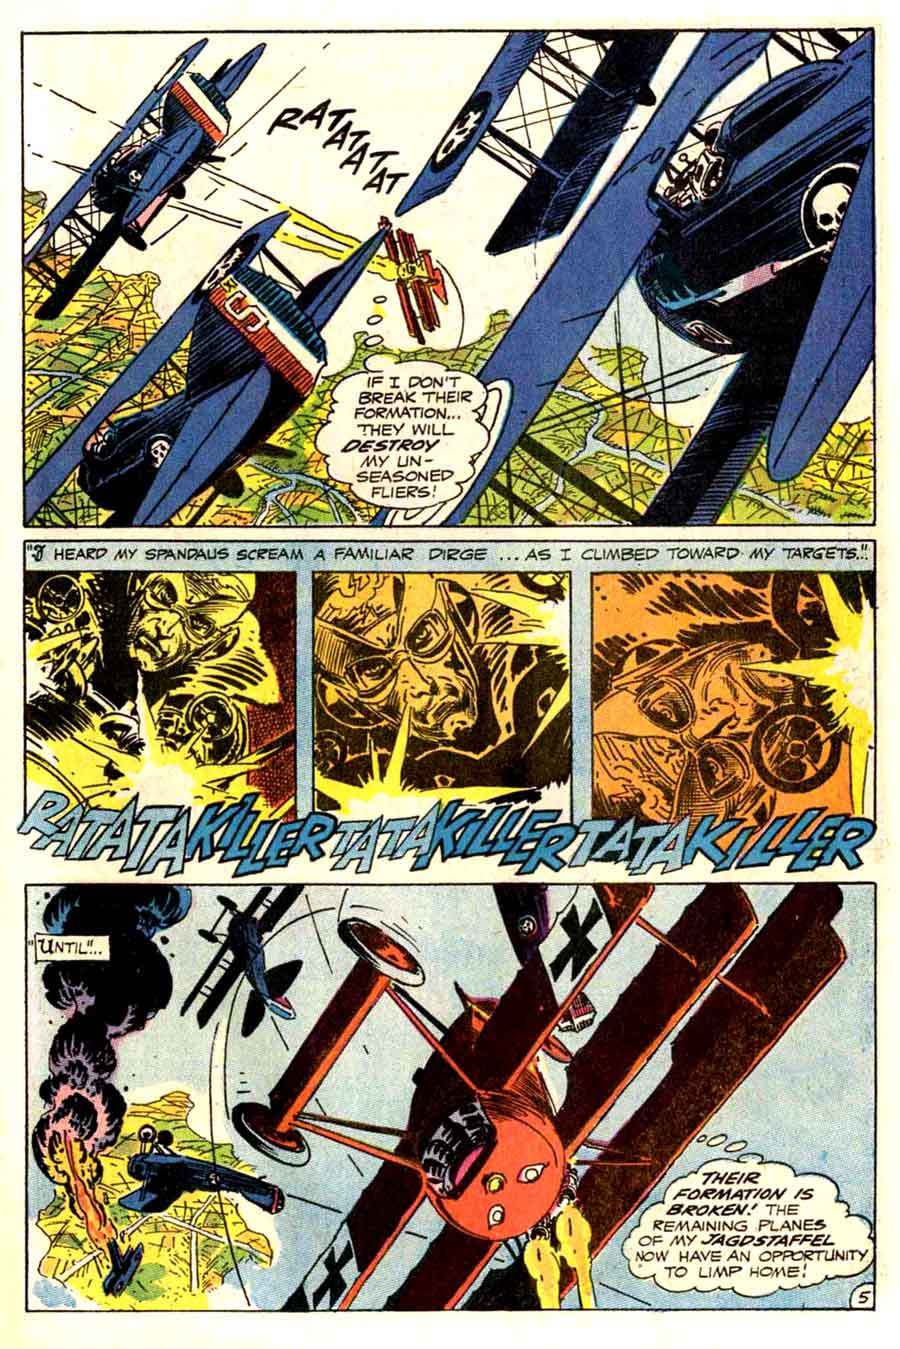 Star Spangled War v1 #144 enemy ace dc comic book page art by Joe Kubert, Neal Adams